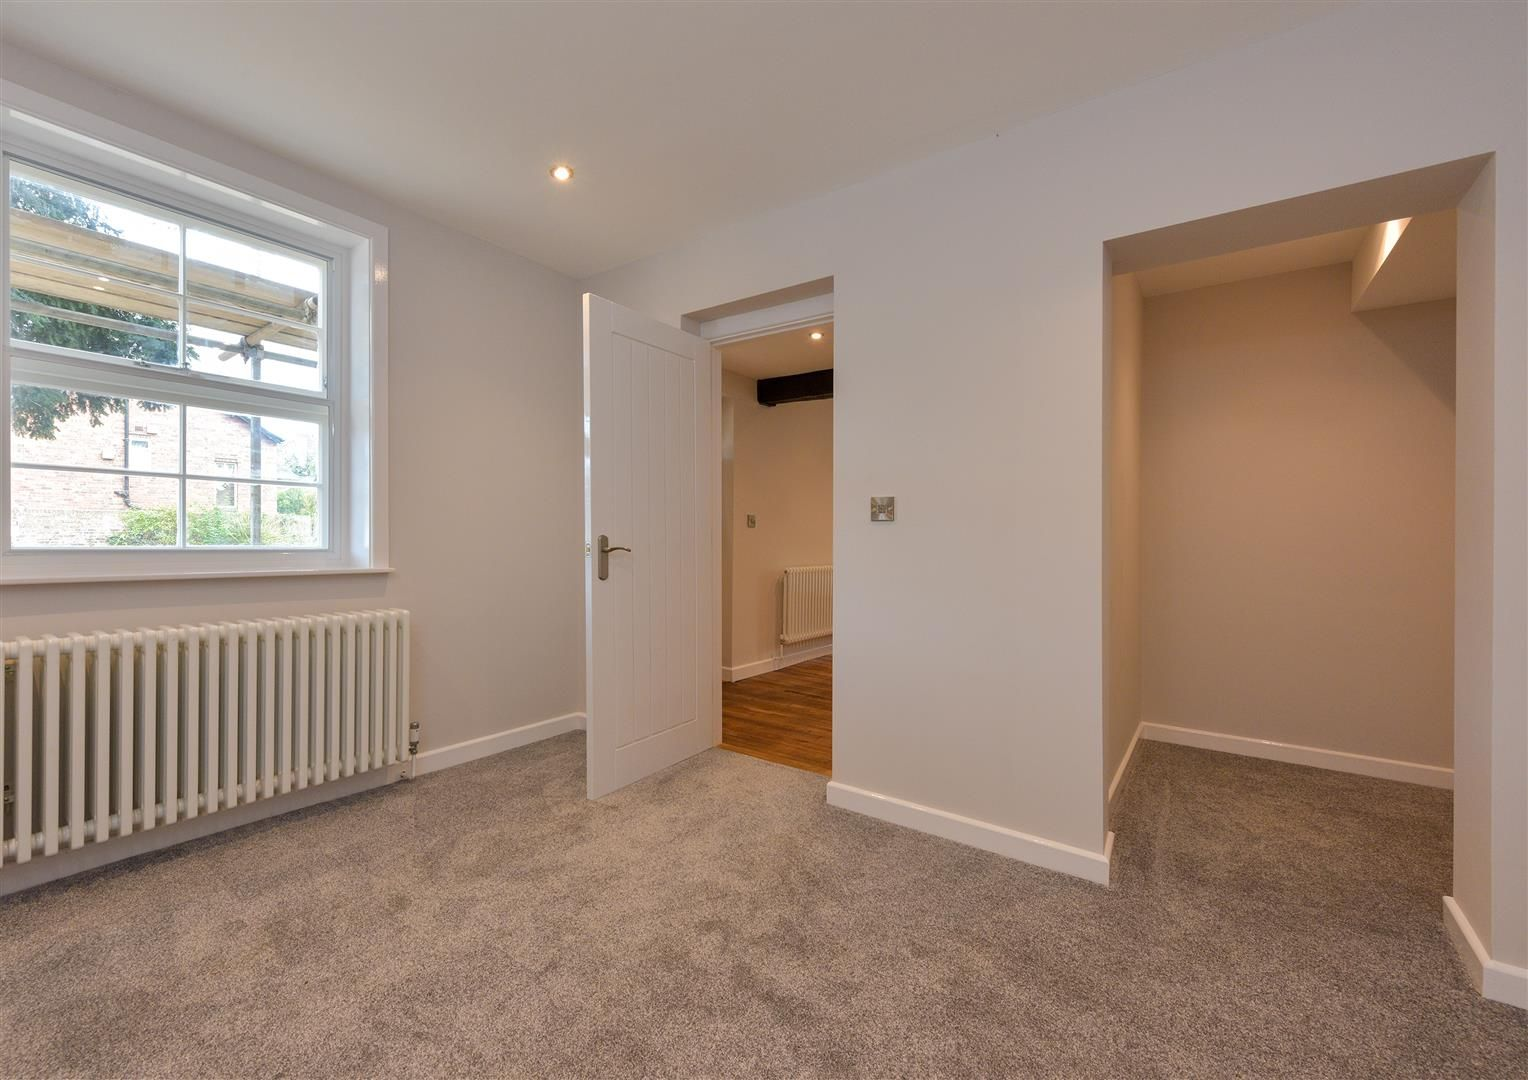 2 bed apartment for sale  - Property Image 11